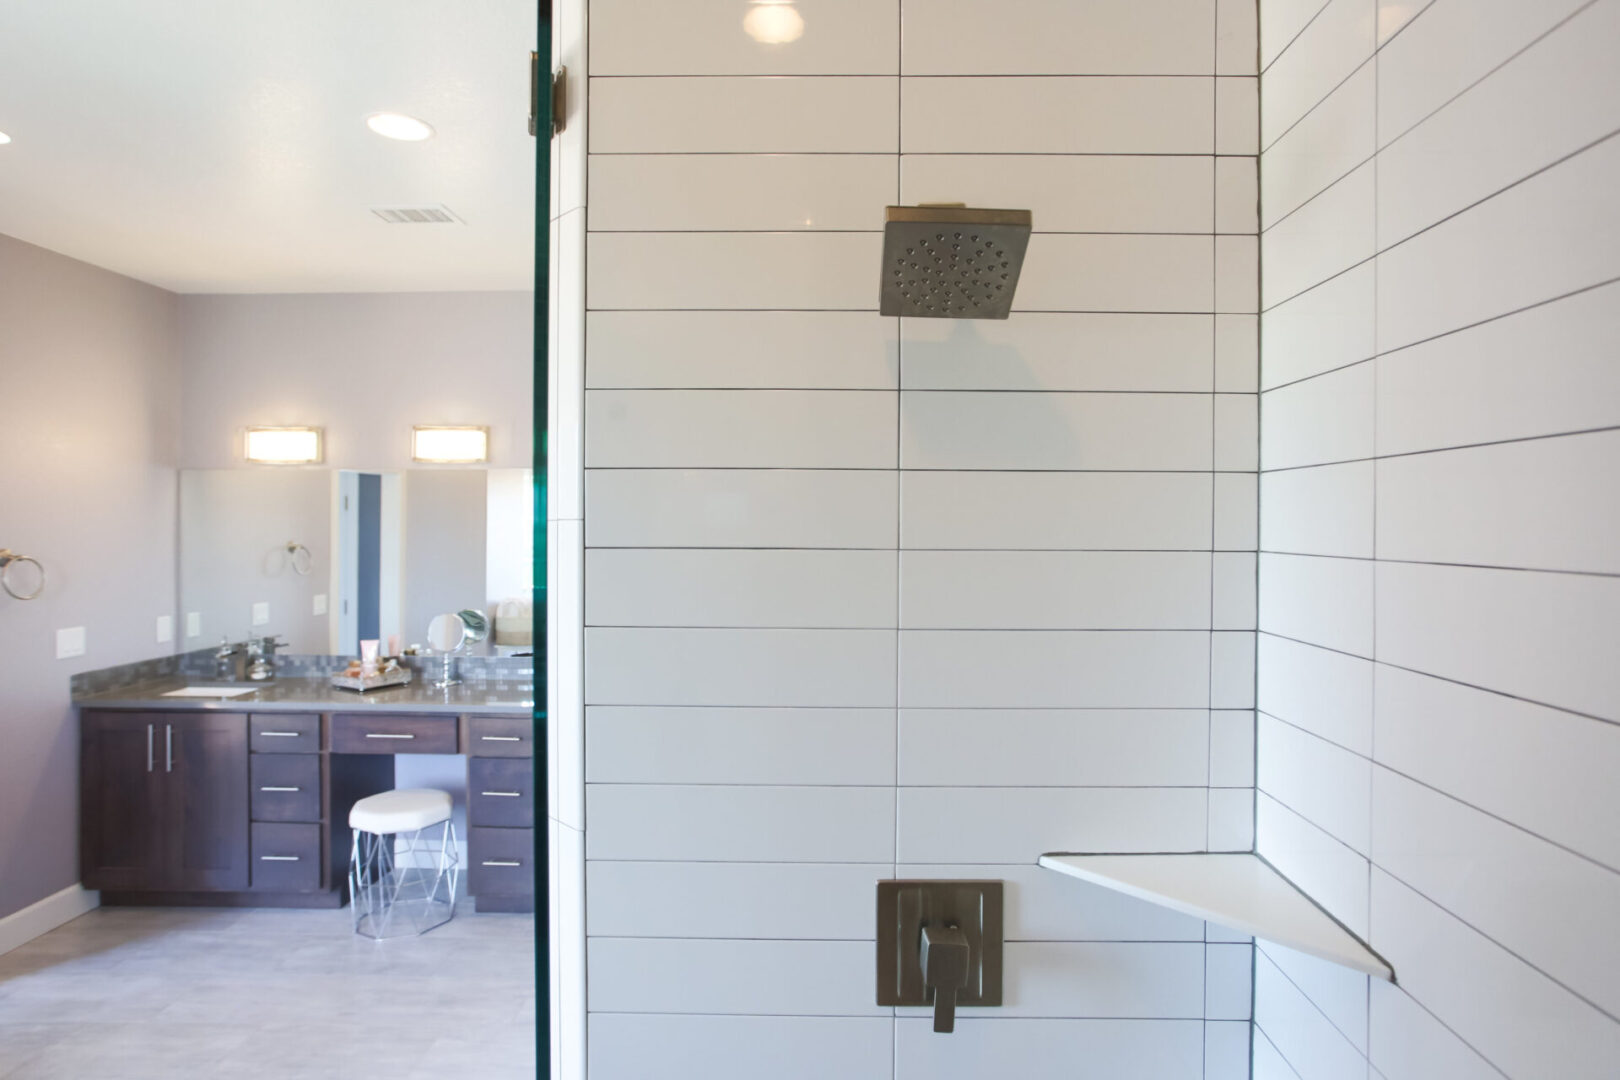 shower enclosure with rectangular white tiles with view of the bathroom sink